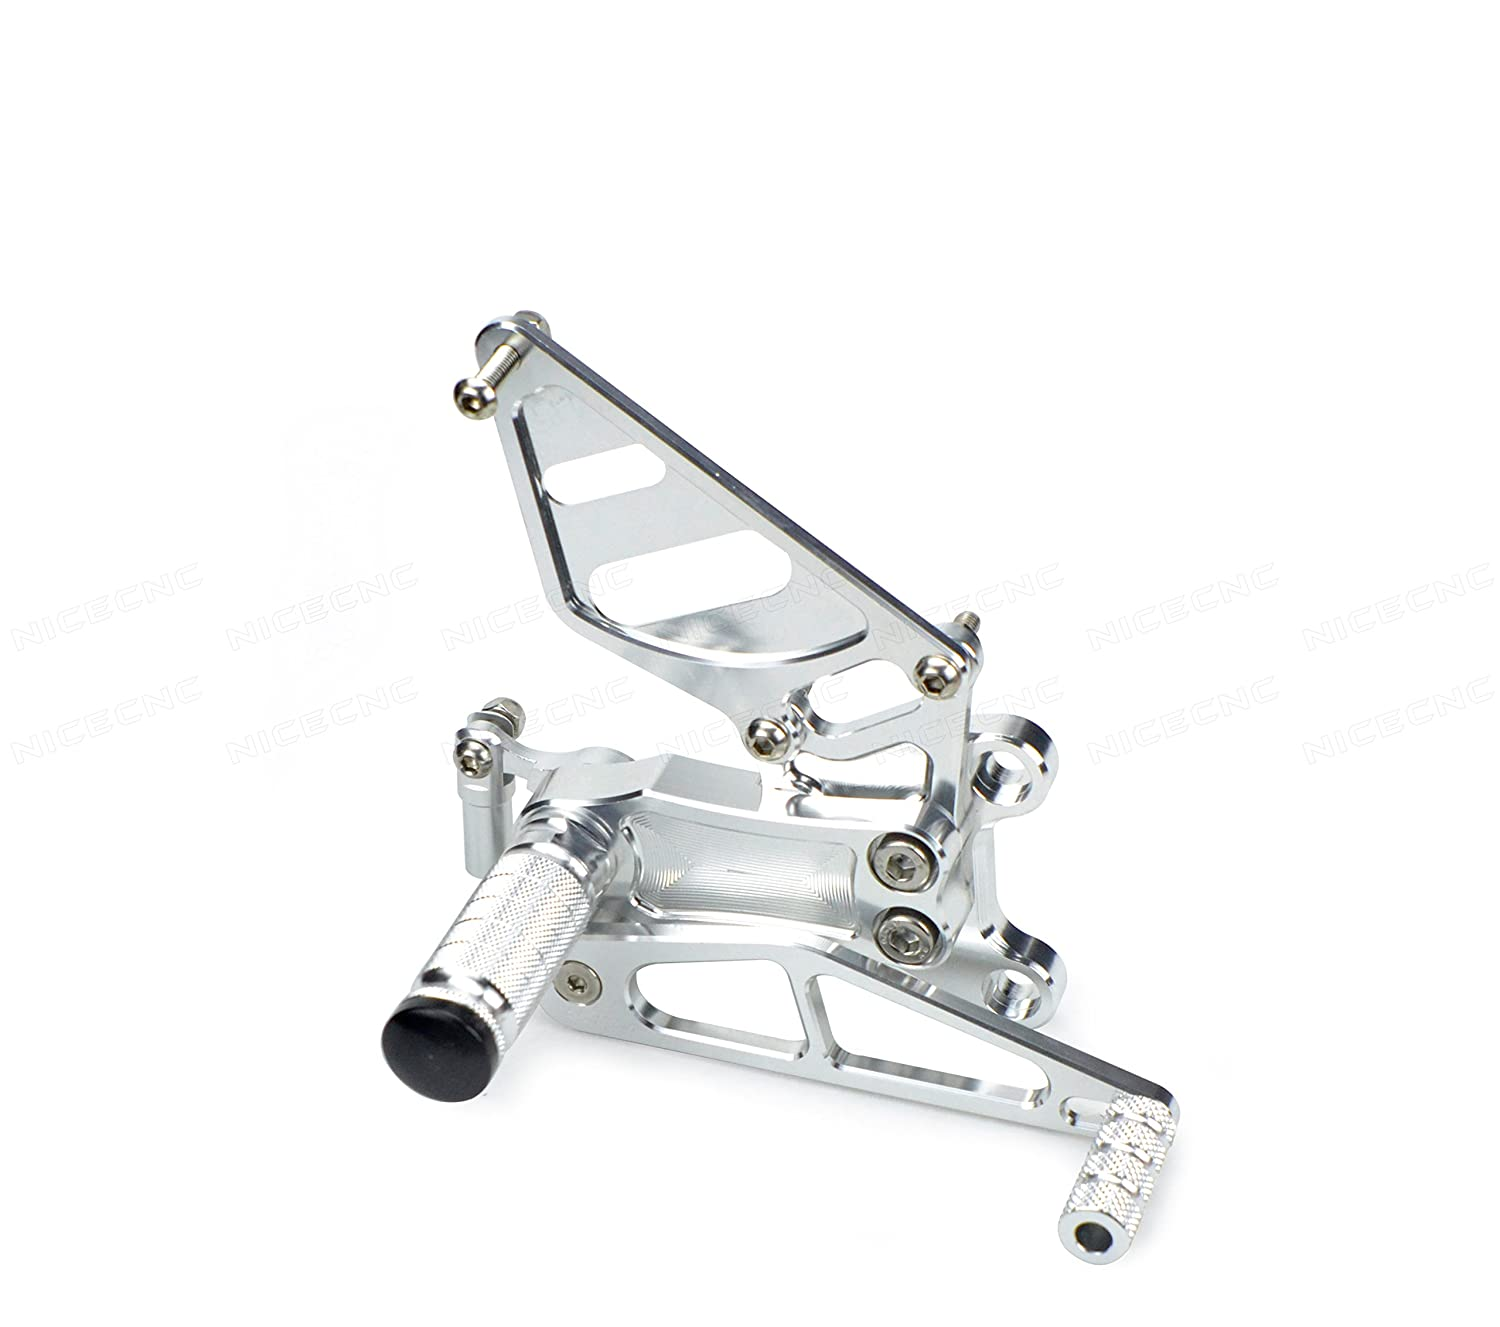 NICECNC Gold Motorcycle Racing Fully Adjustable Rearset Footrests Foot Pegs Rear Set Replace CBR929RR 2000-2003 CBR954RR 2002-2003